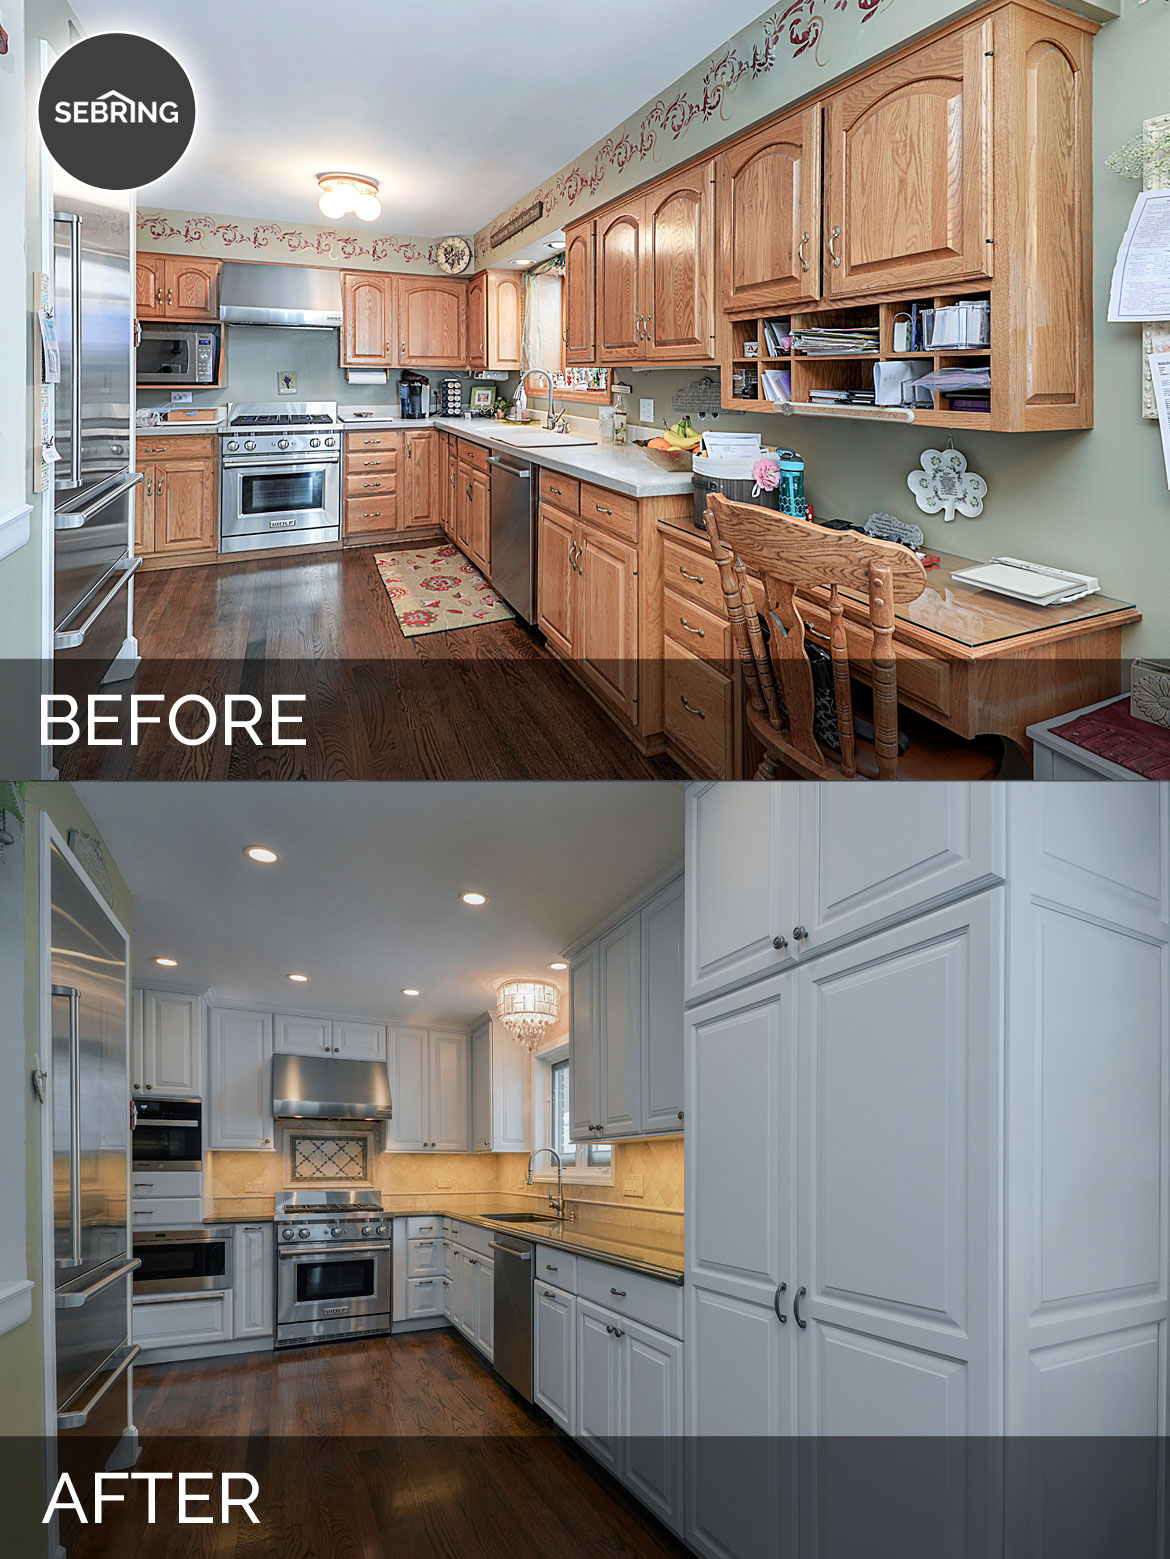 Mike betty 39 s kitchen before after pictures home for Kitchen remodel before after